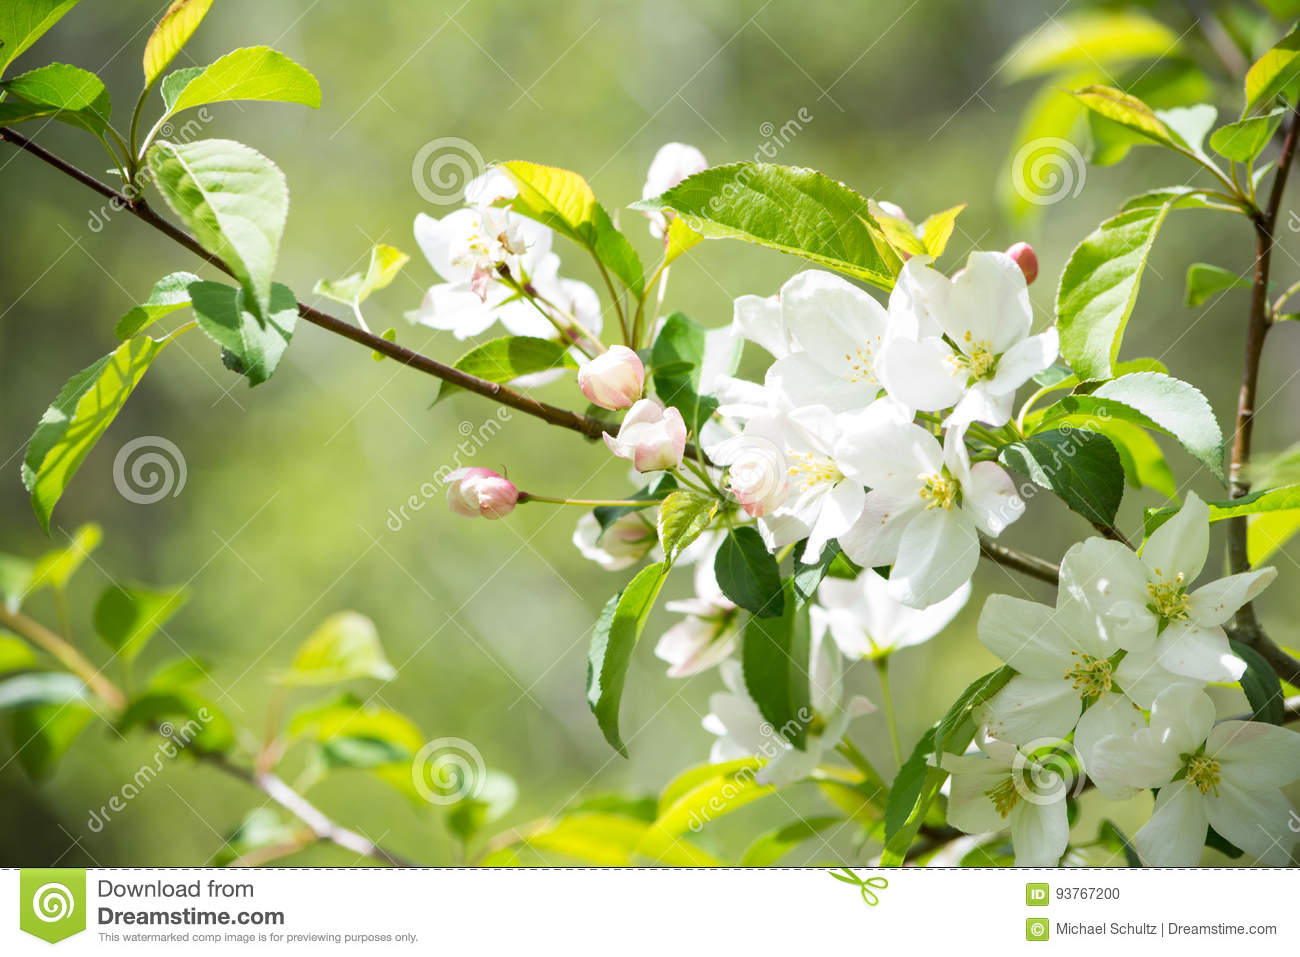 White crab apple flowers stock photo image of branches 93767200 white crab apple flowers mightylinksfo